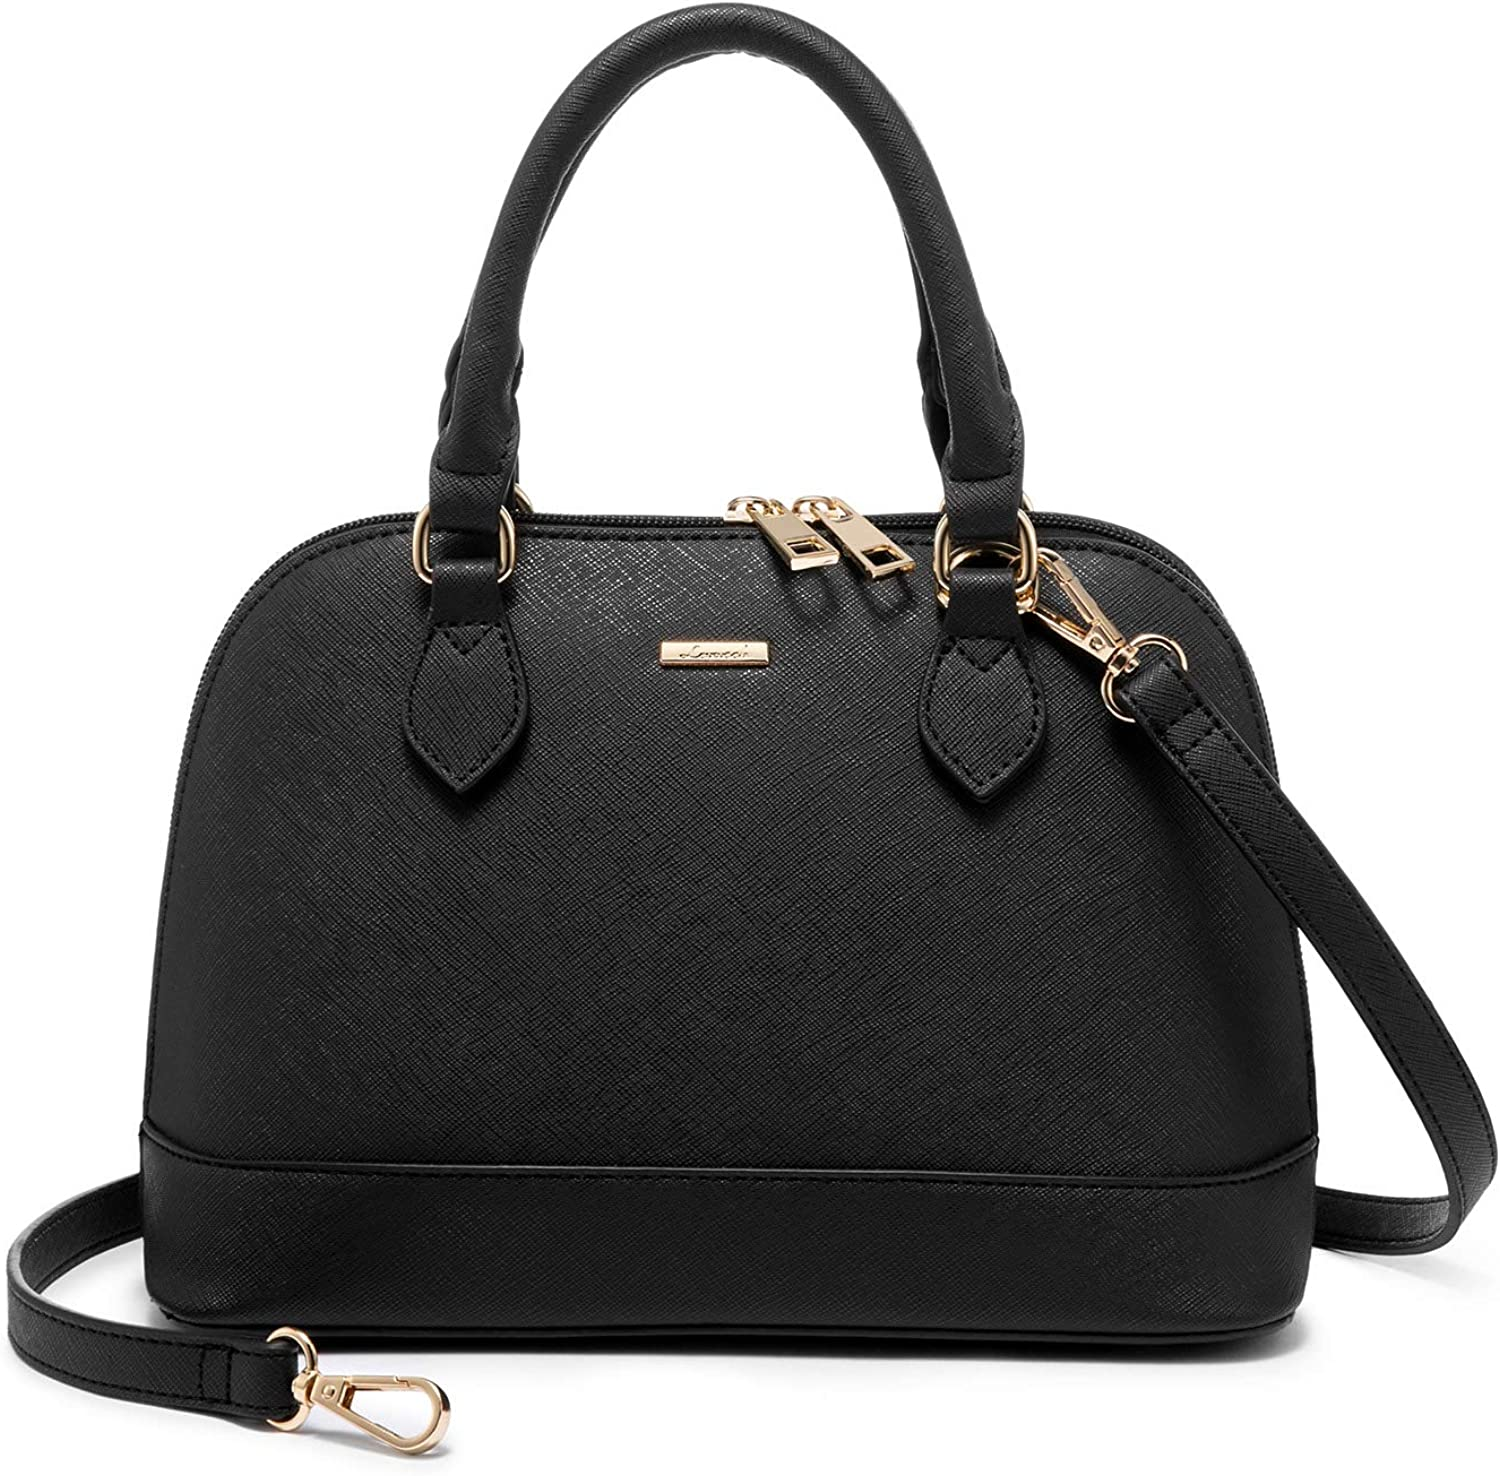 Daily bargain sale Small Crossbody Bags for Women Classic Handle Top Zip Super beauty product restock quality top! Double Dom